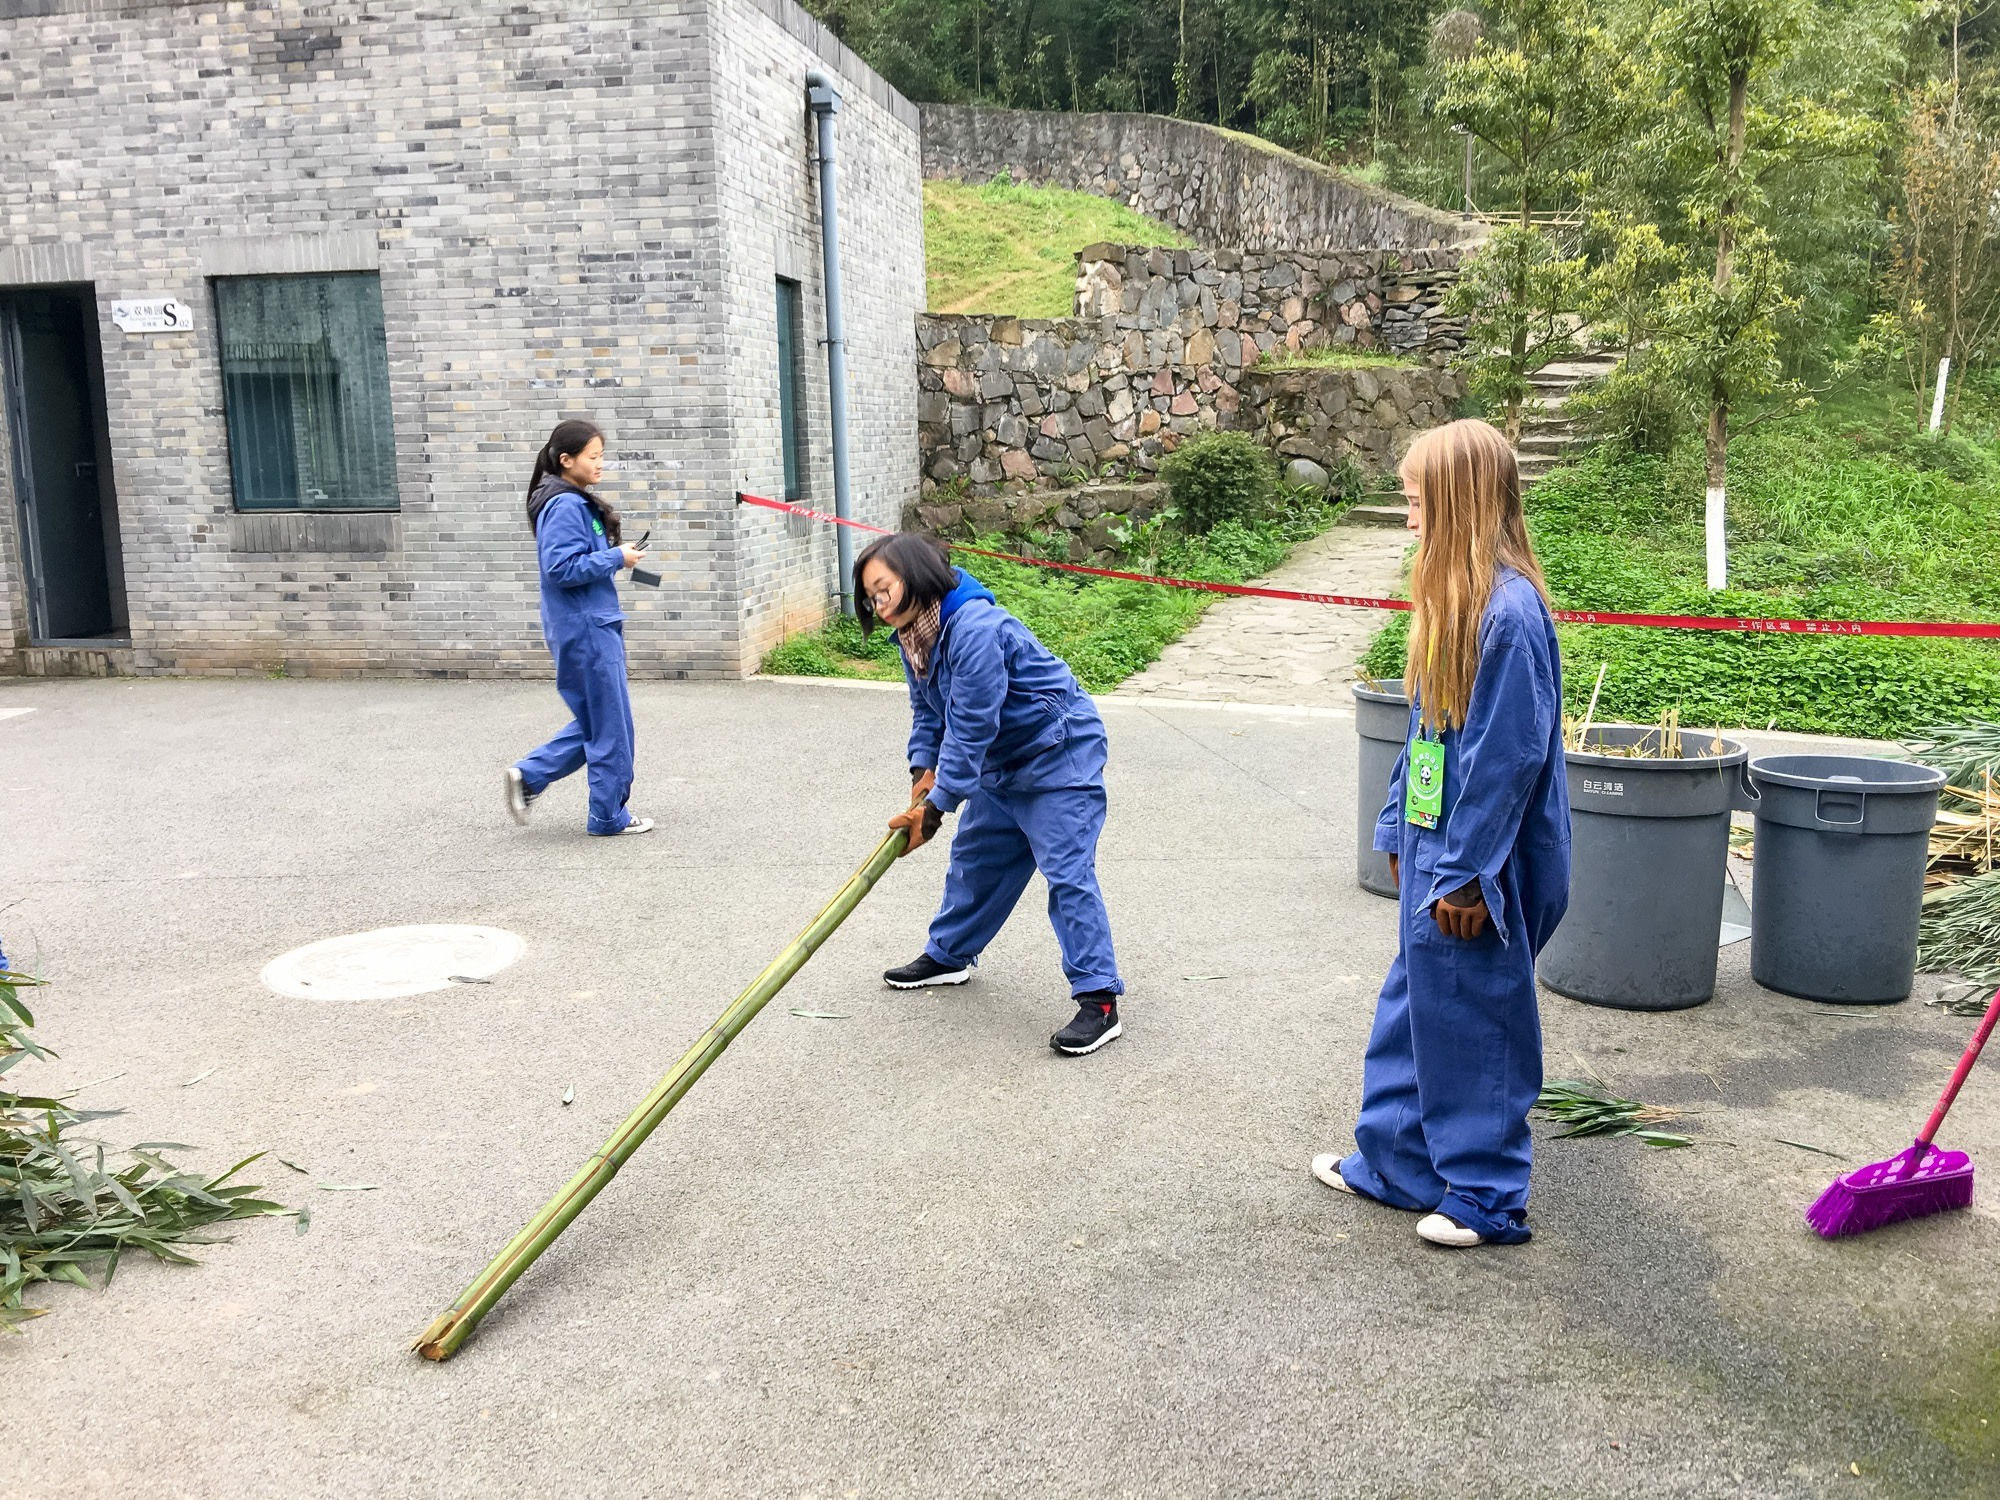 Learning to split bamboo while volunteering at Dujiangyan Panda Base outside of Chengdu, China.